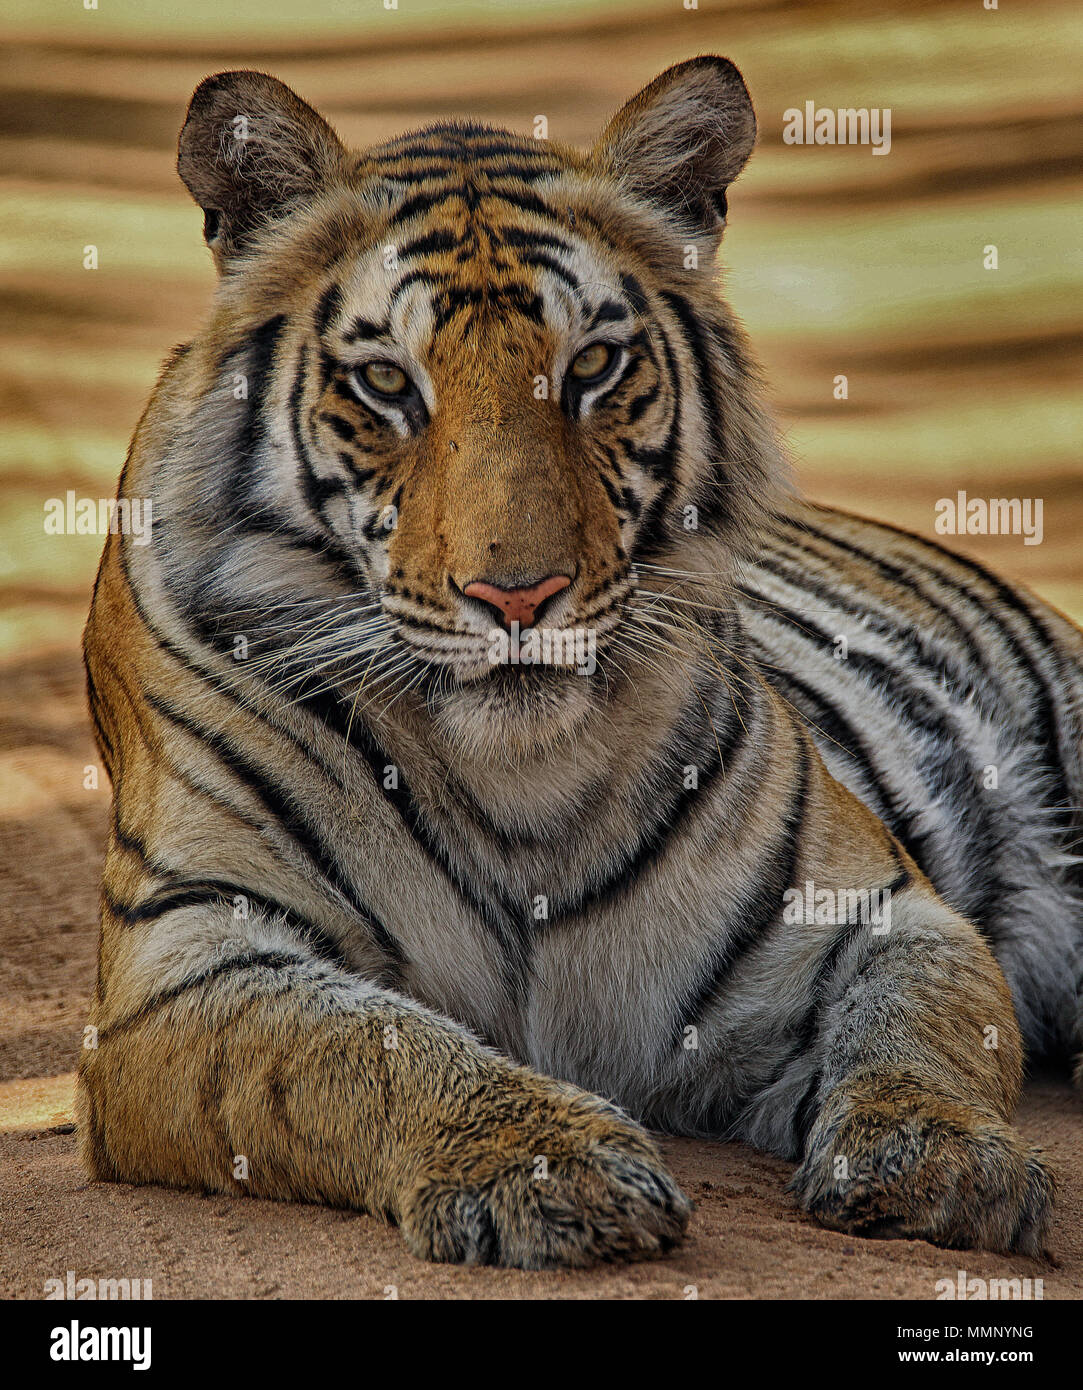 Tiger am Anschluss, Bandhavgarh Nationalpark, Indien Stockbild